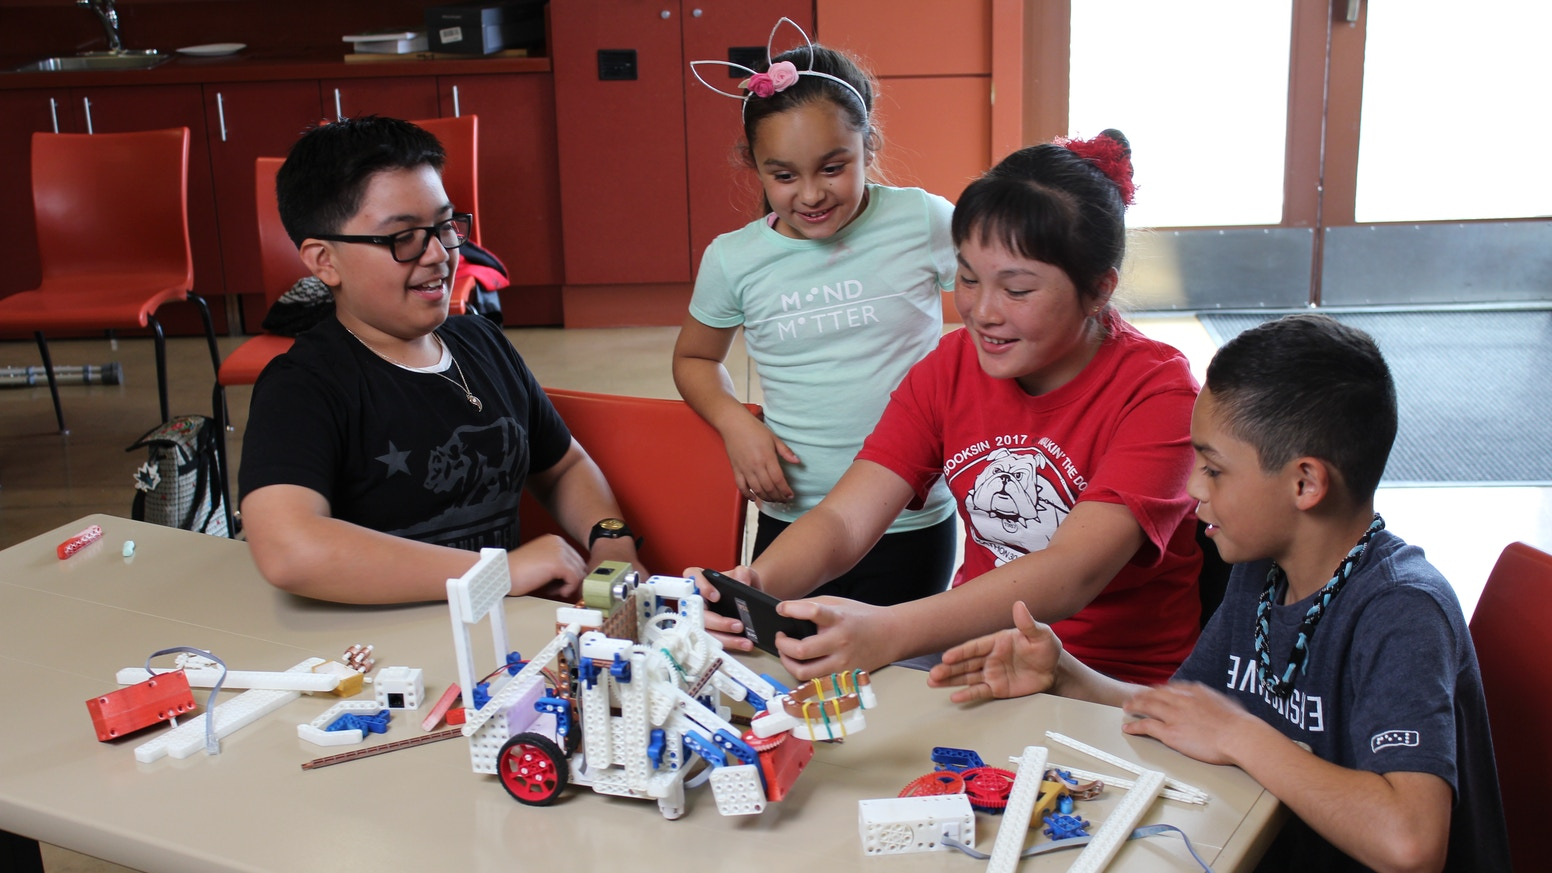 Revolution Robotics Challenge Kit: Develops STEM Superpowers